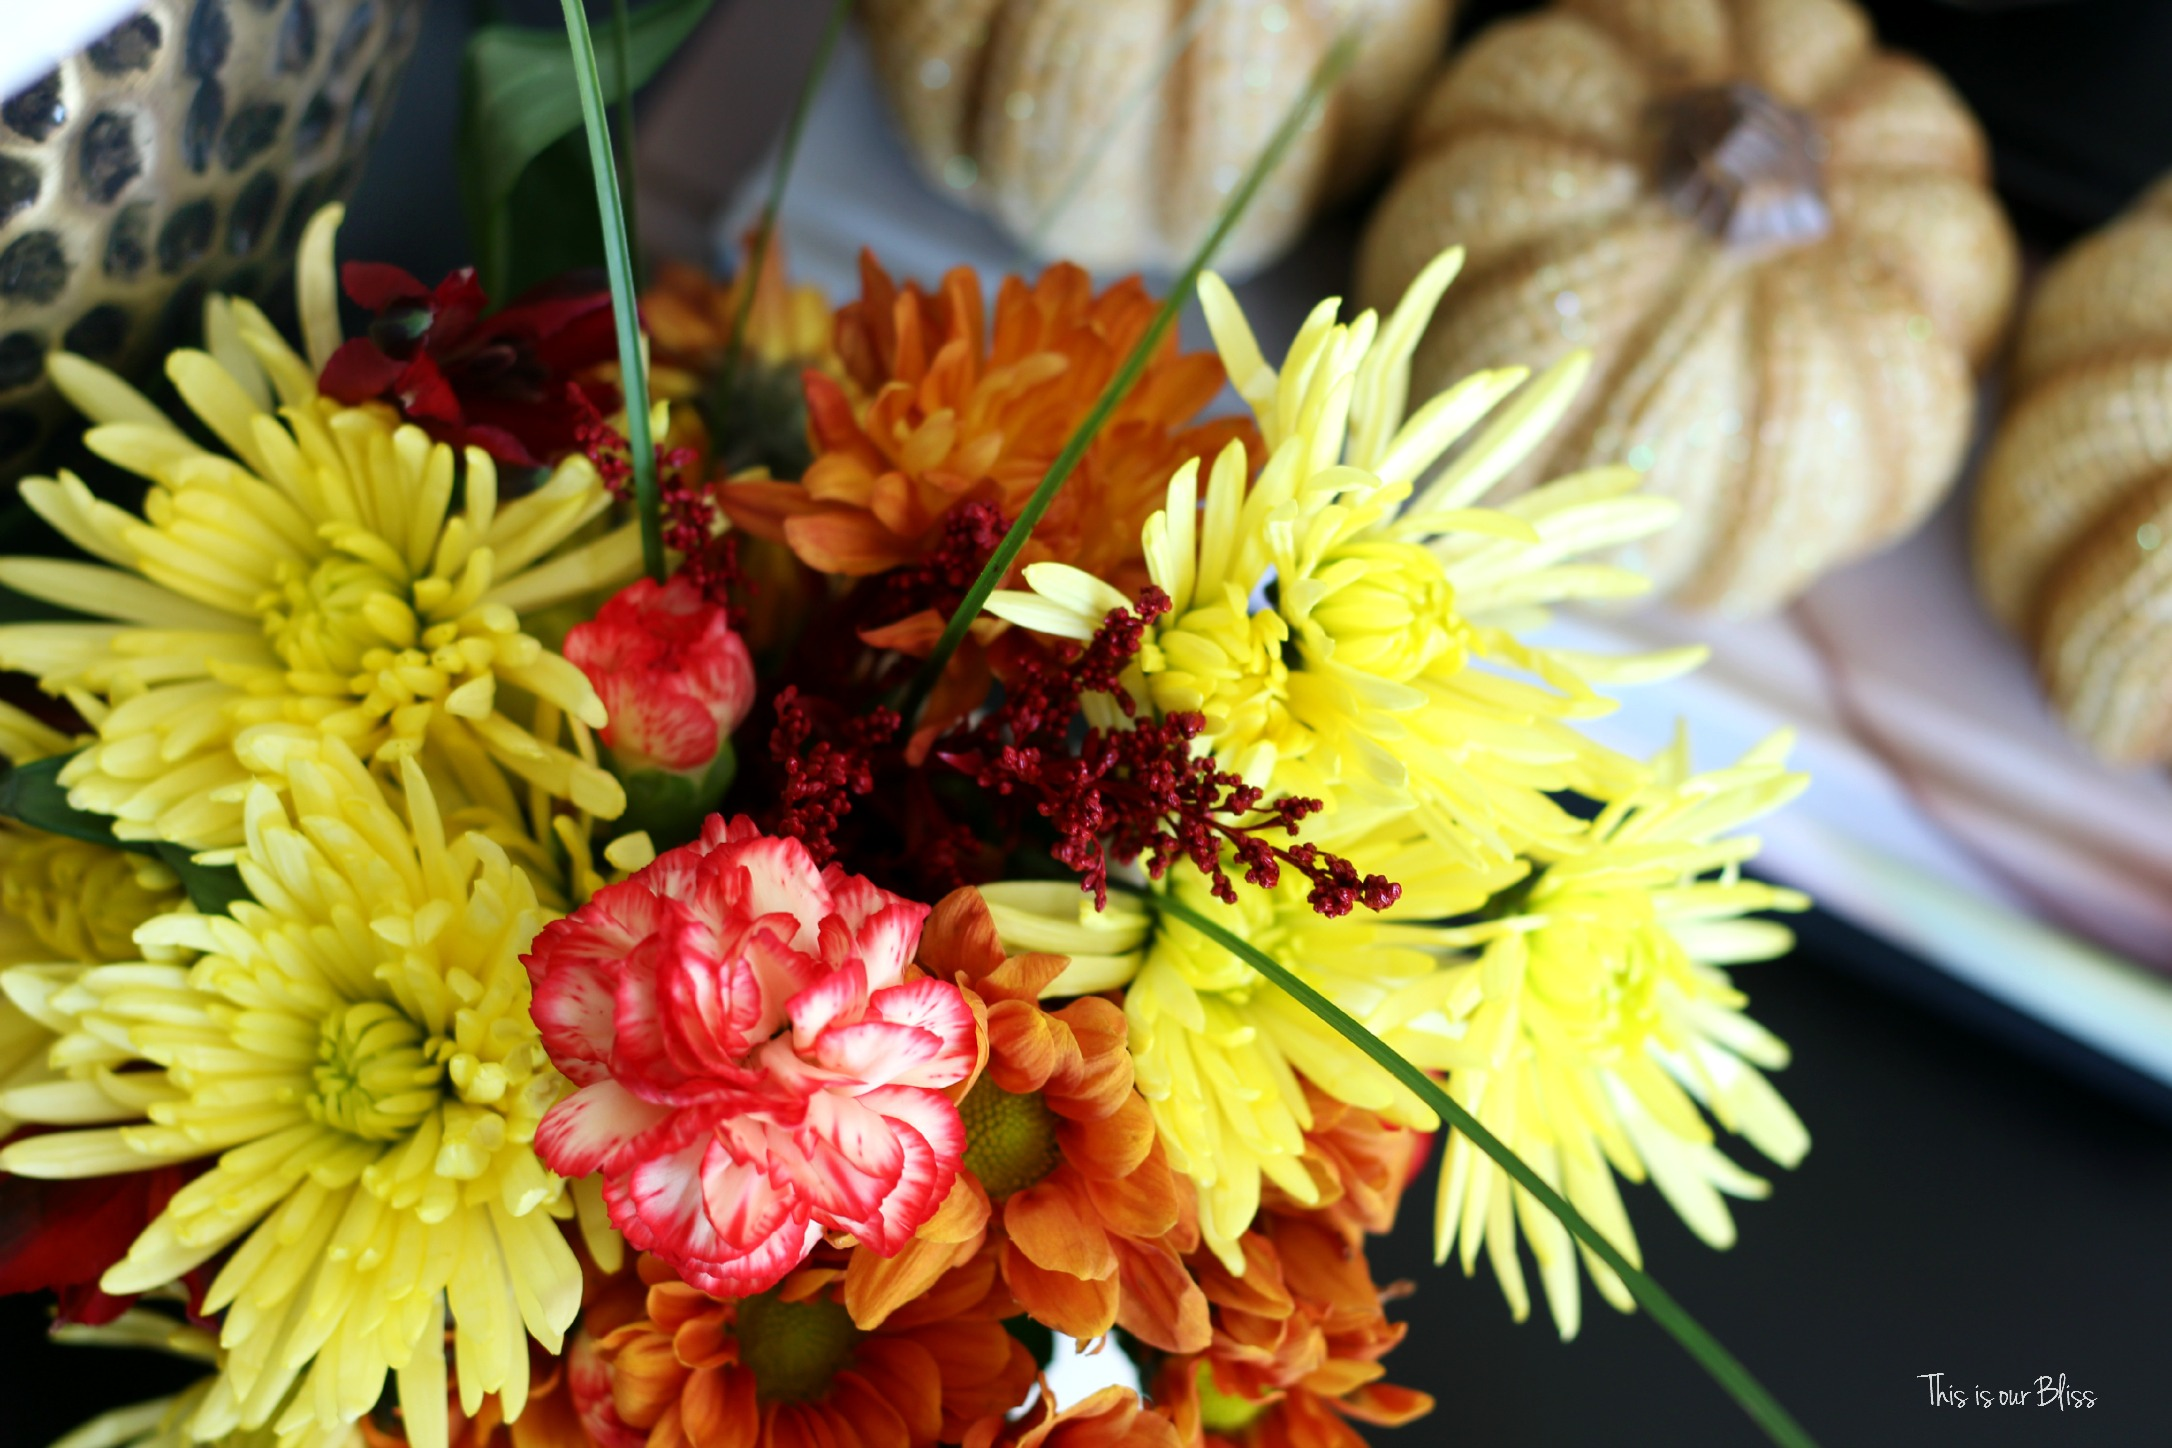 easy fall vignette - simply fall decor - fall flowers - end table styling - fall flowers - this is our Bliss